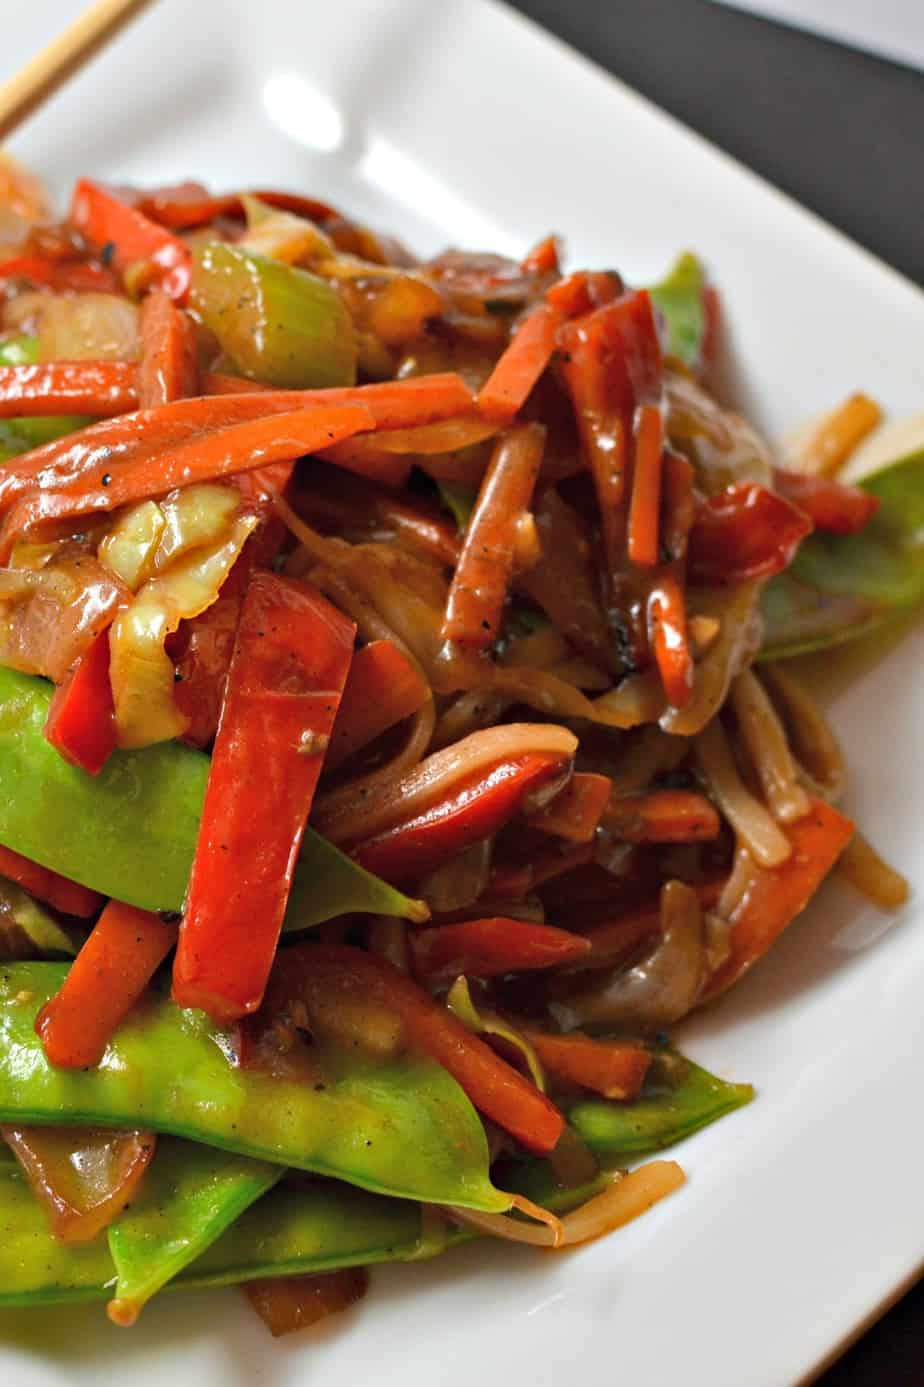 A delicious beef stir fry recipe with onions, carrots, celery, red bell pepper, noodles and an easy six ingredient sauce.